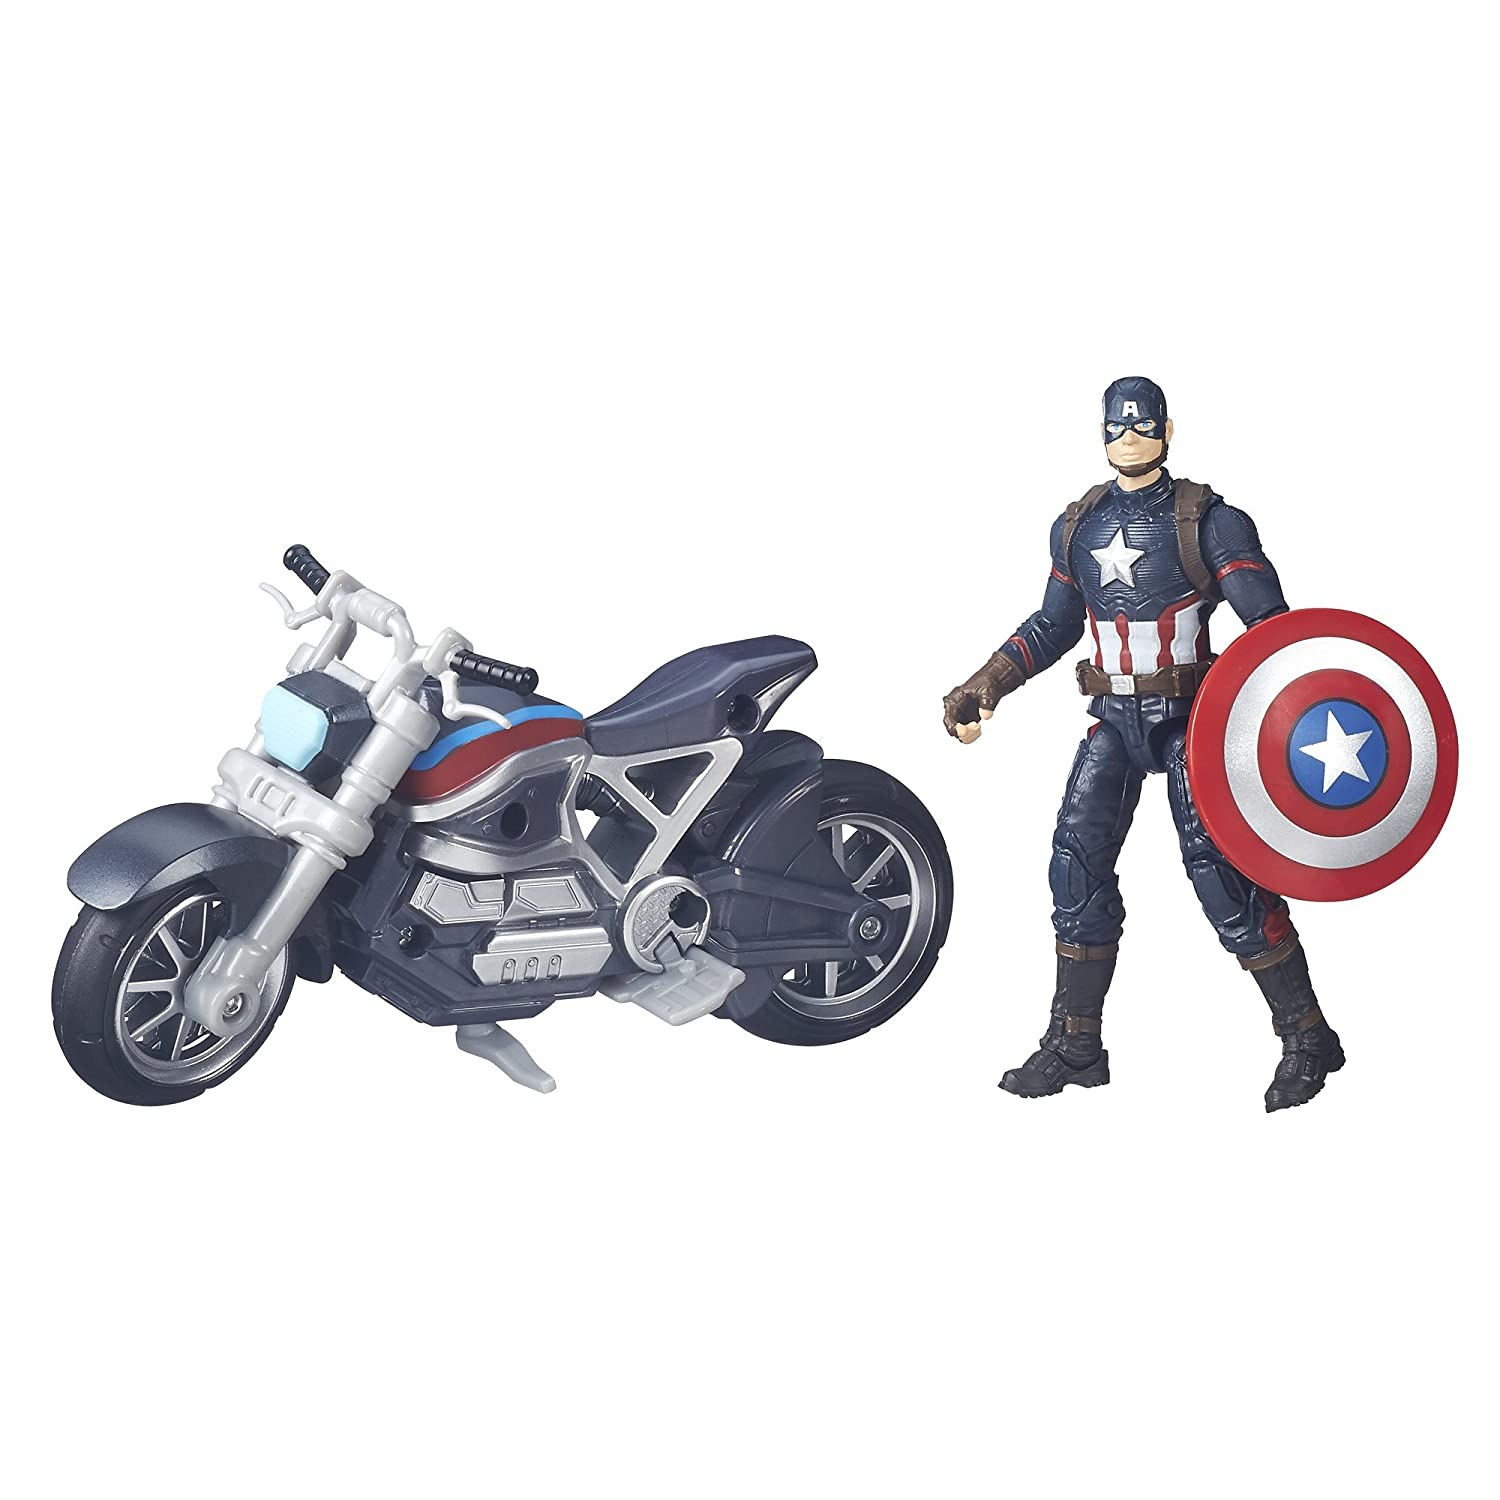 Marvel Captain America Movie 3.75-Inch Legends Action Figure and Vehicle B6354